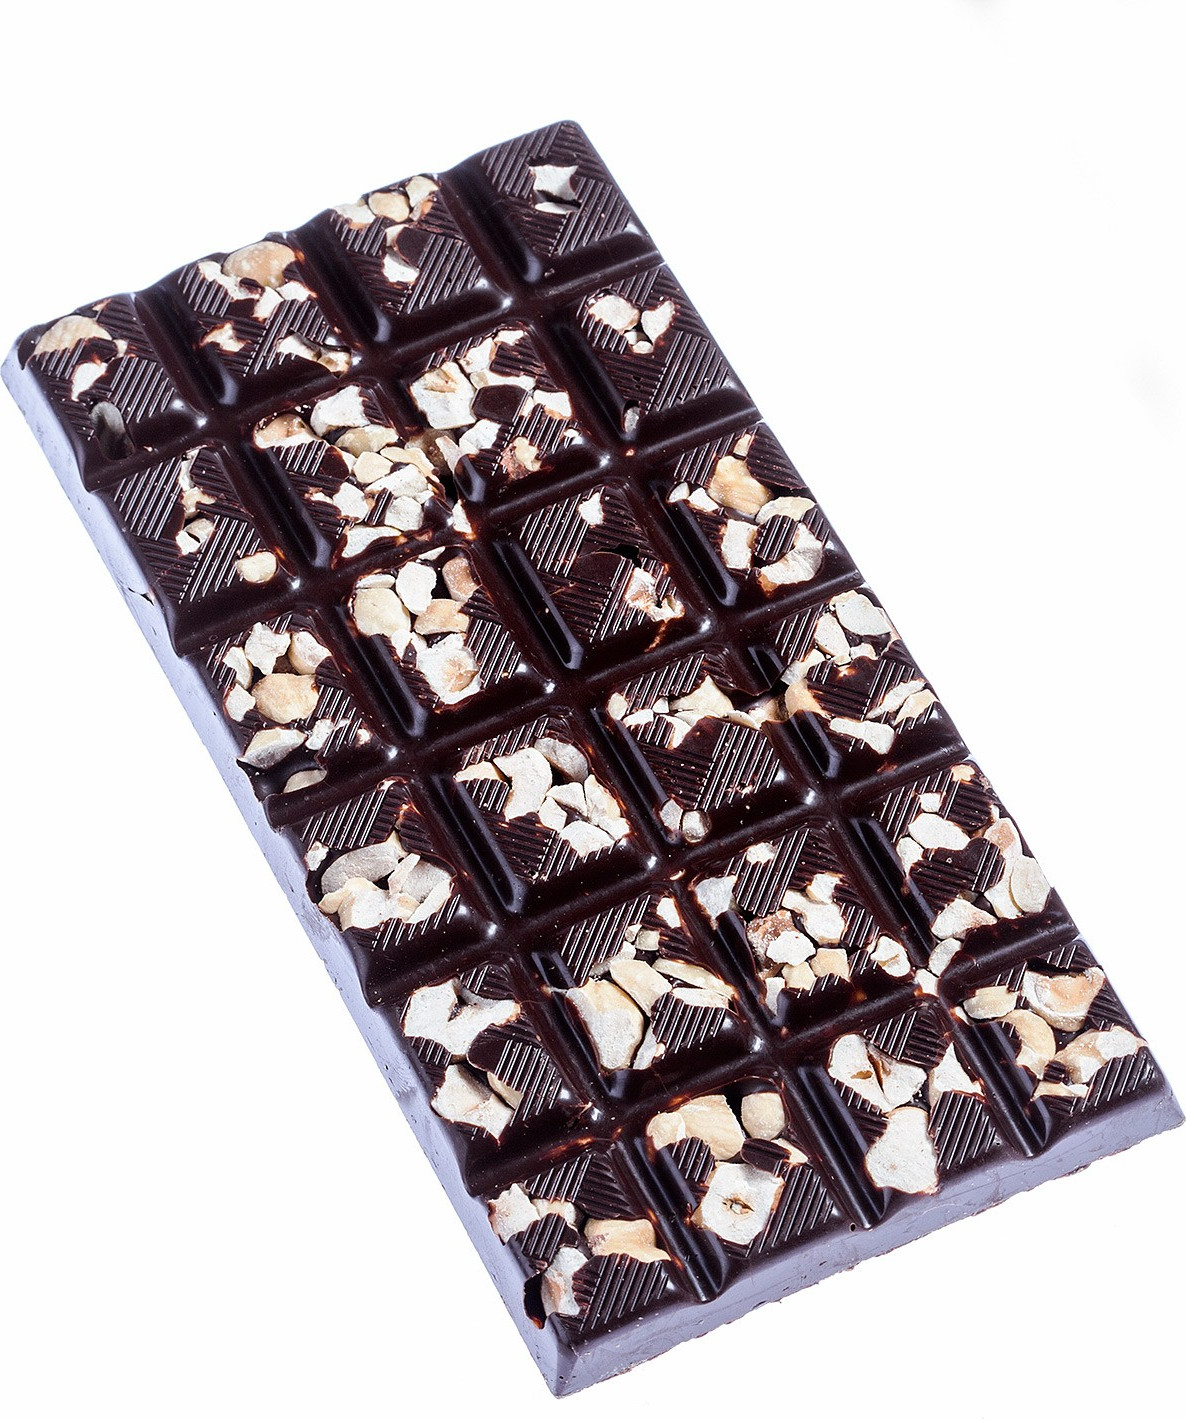 LOU POUTOUNET CHOCOLATE BAR